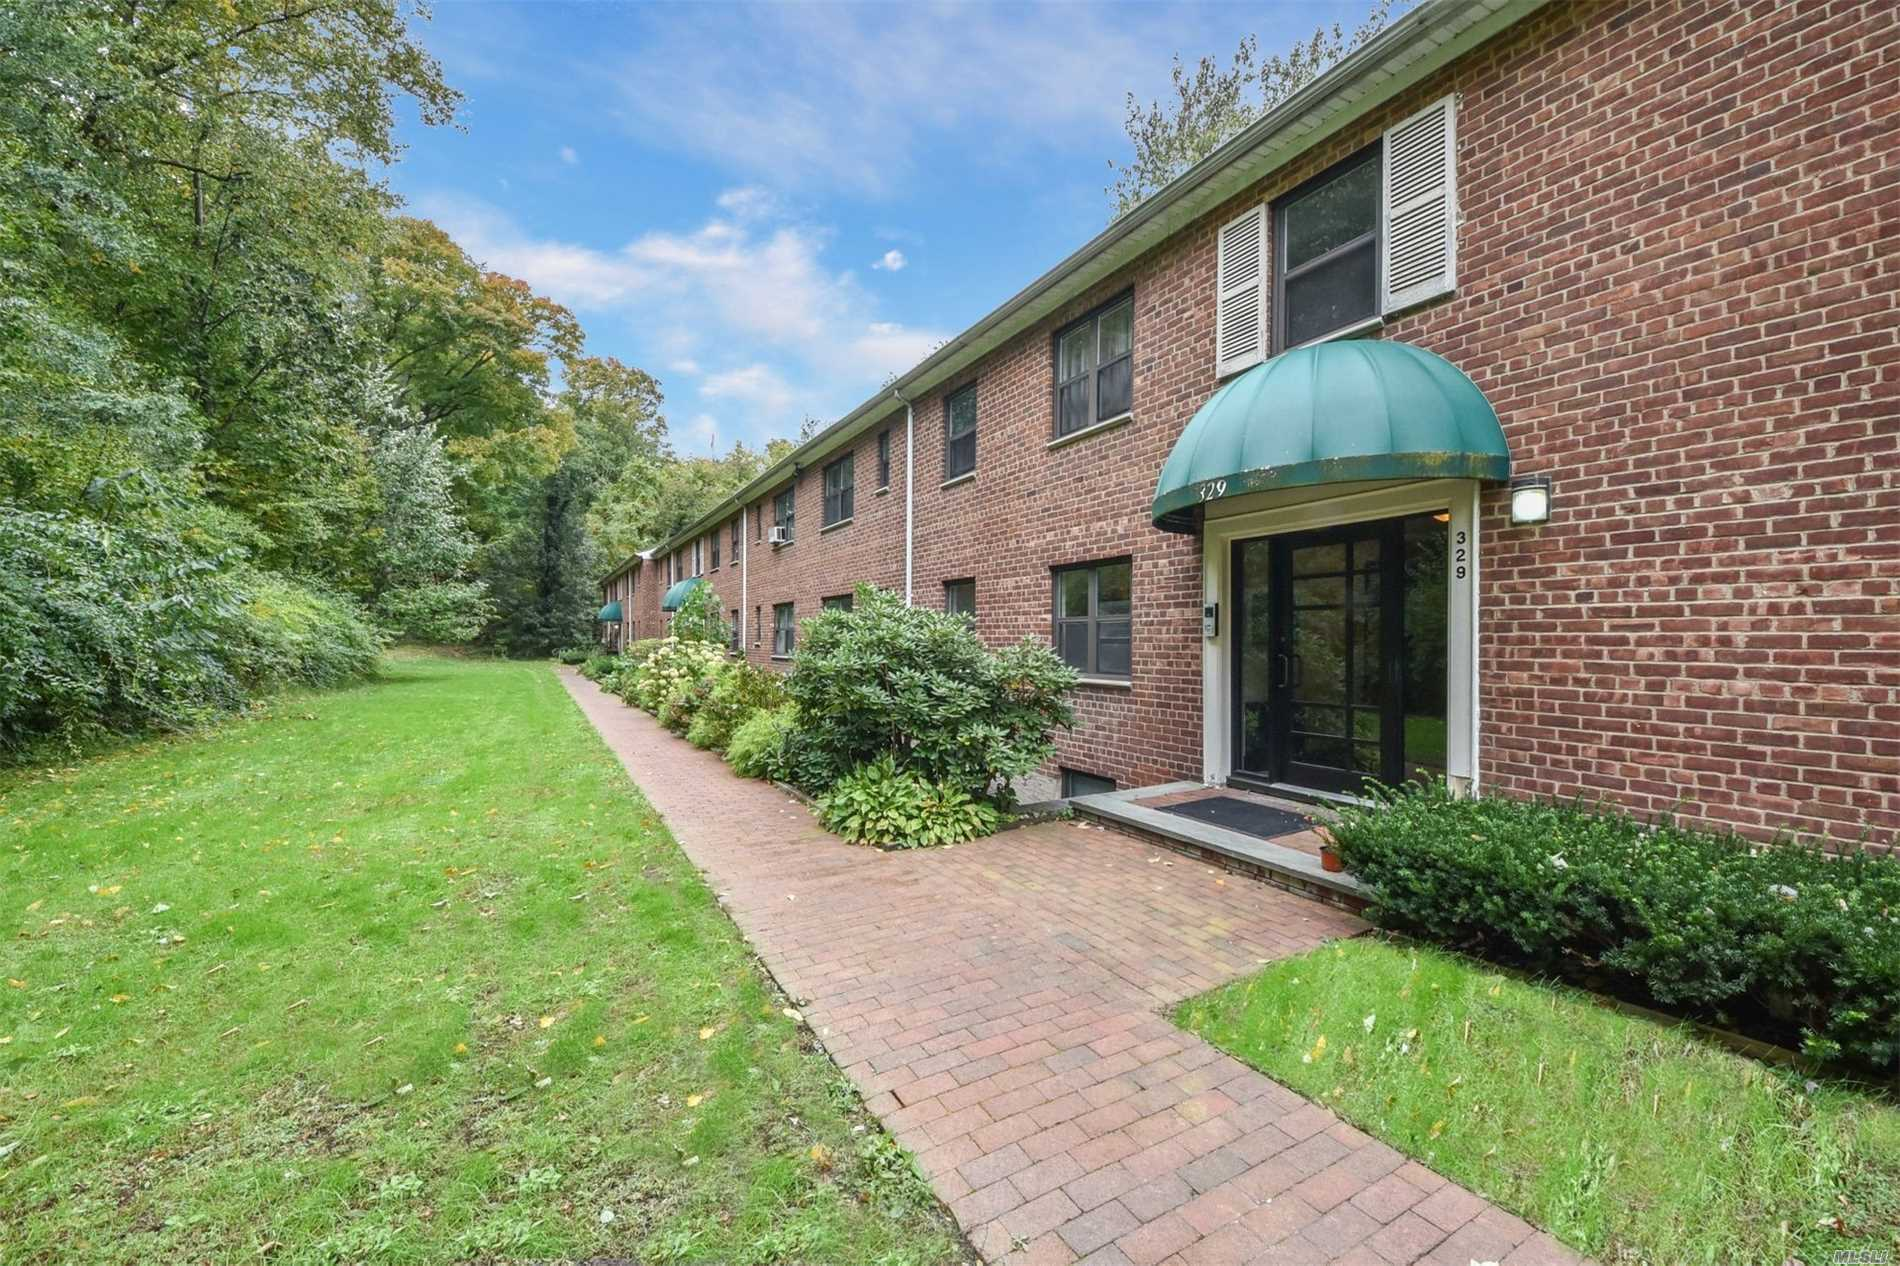 Property for sale at 329 Main St, Roslyn,  NY 11576